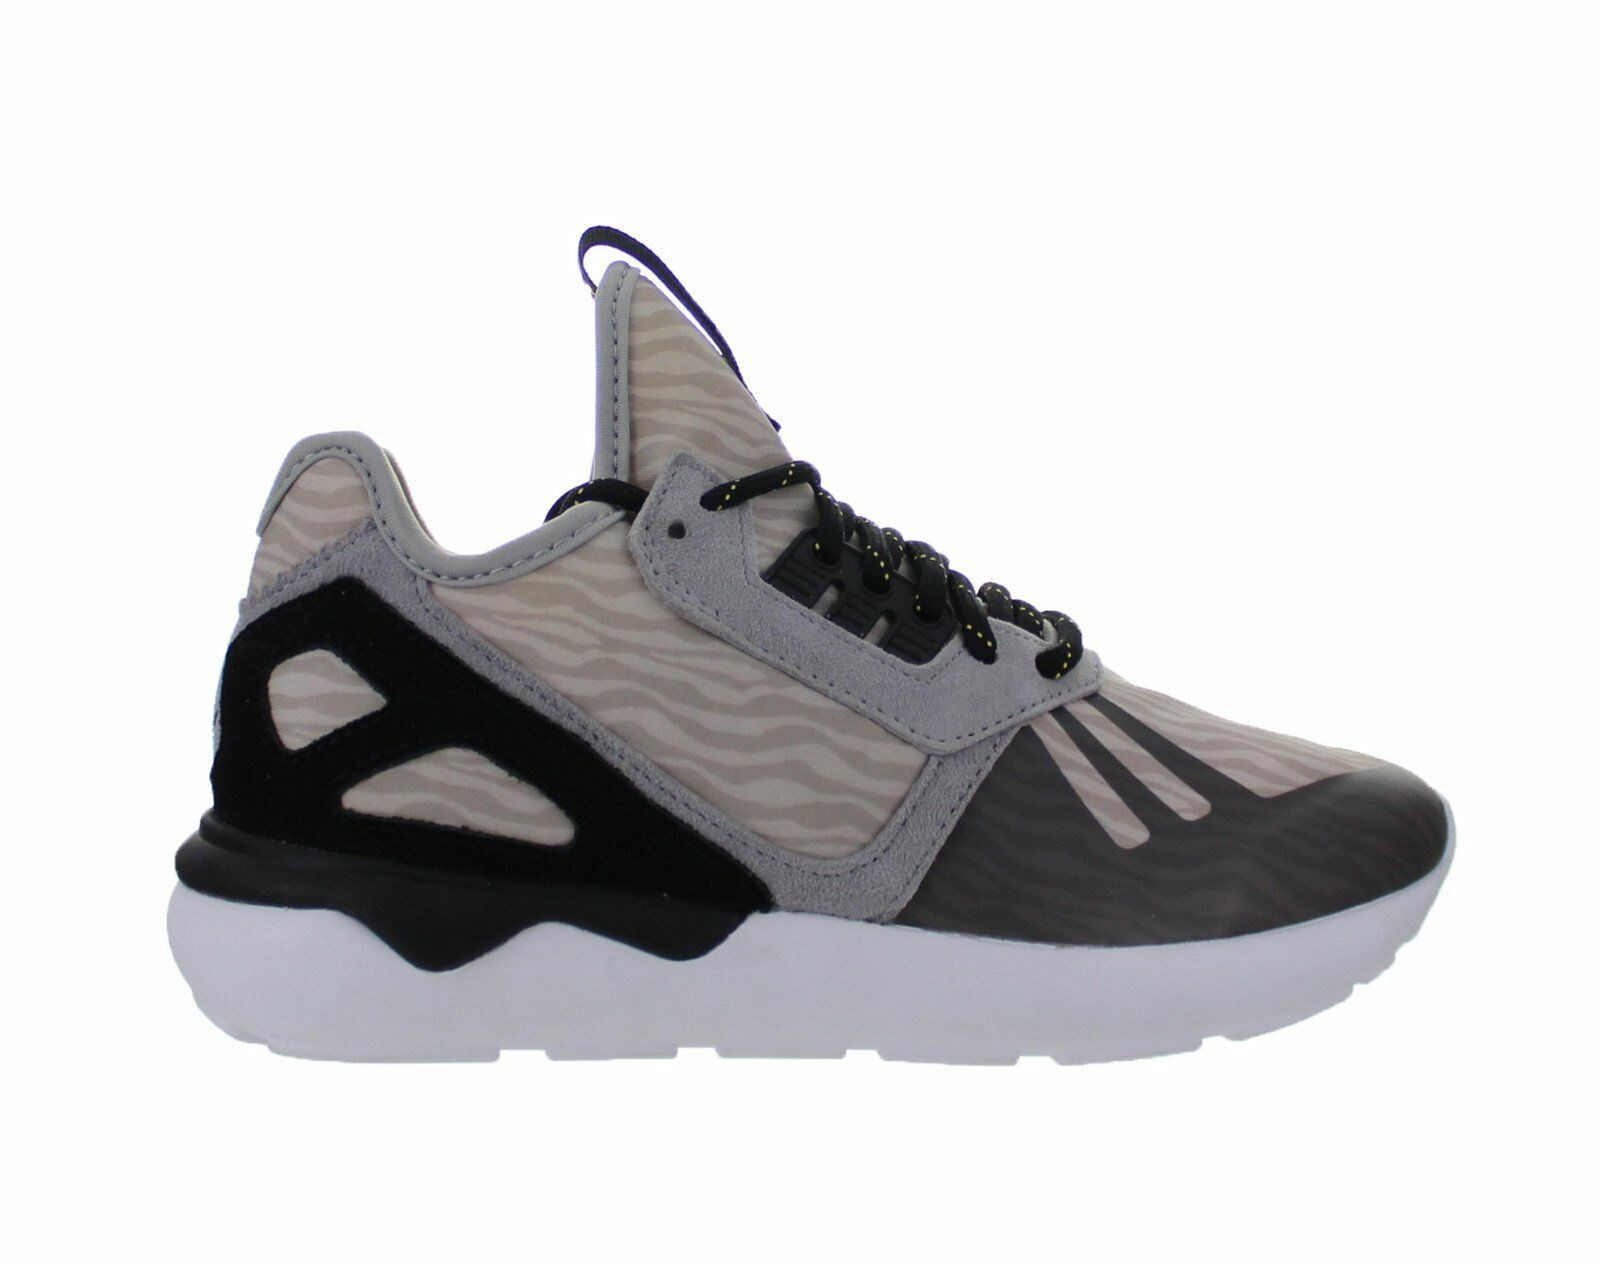 Mens Adidas Grey Tubular Runner Multi Solid Grey Adidas Black B25532 16499a